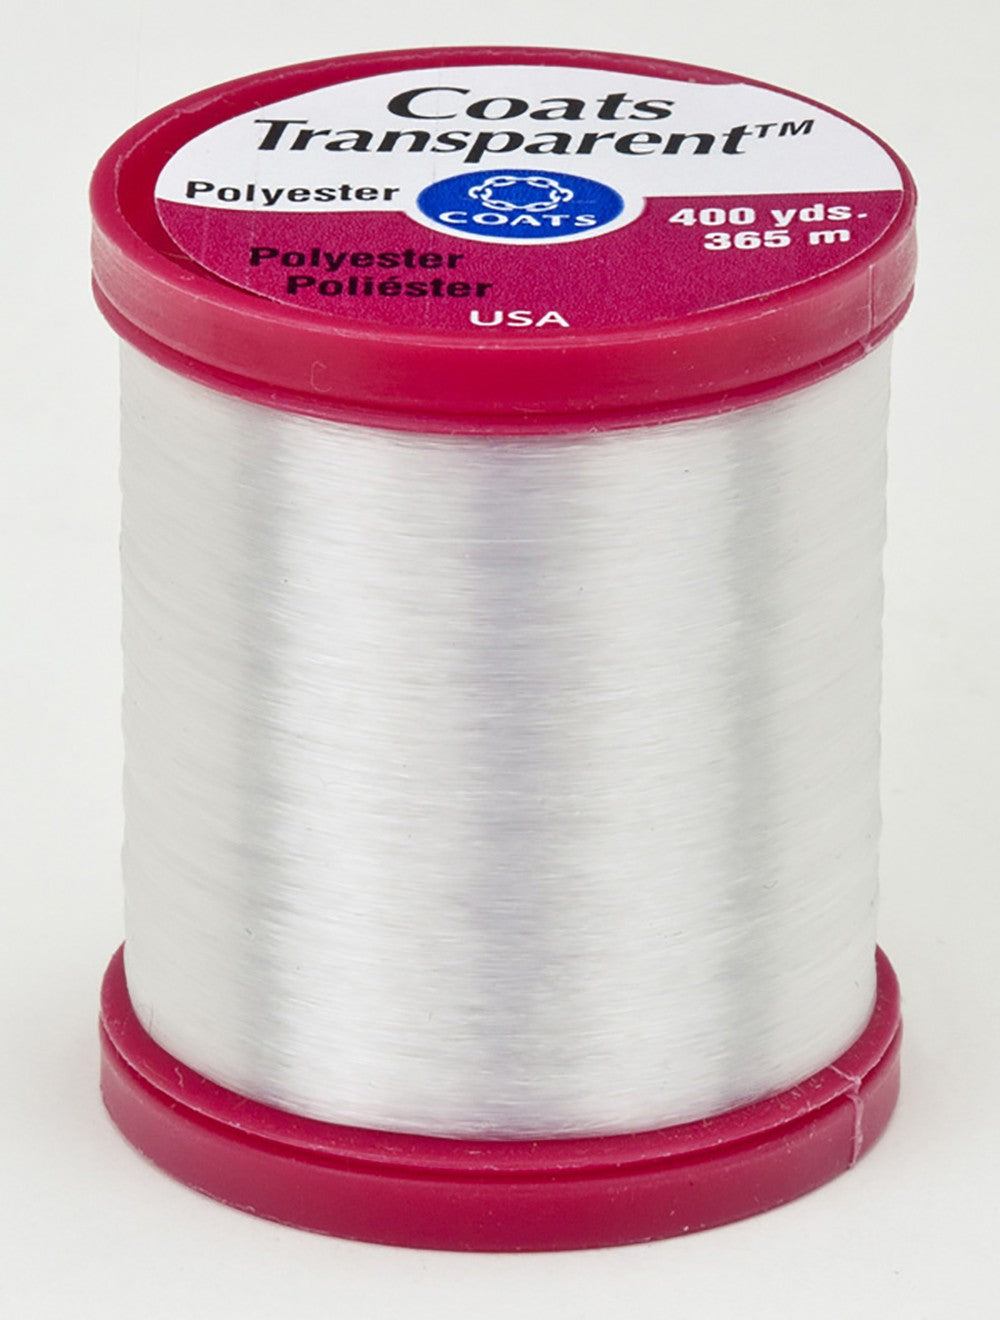 Coats Transparent Polyester Thread 400 yds